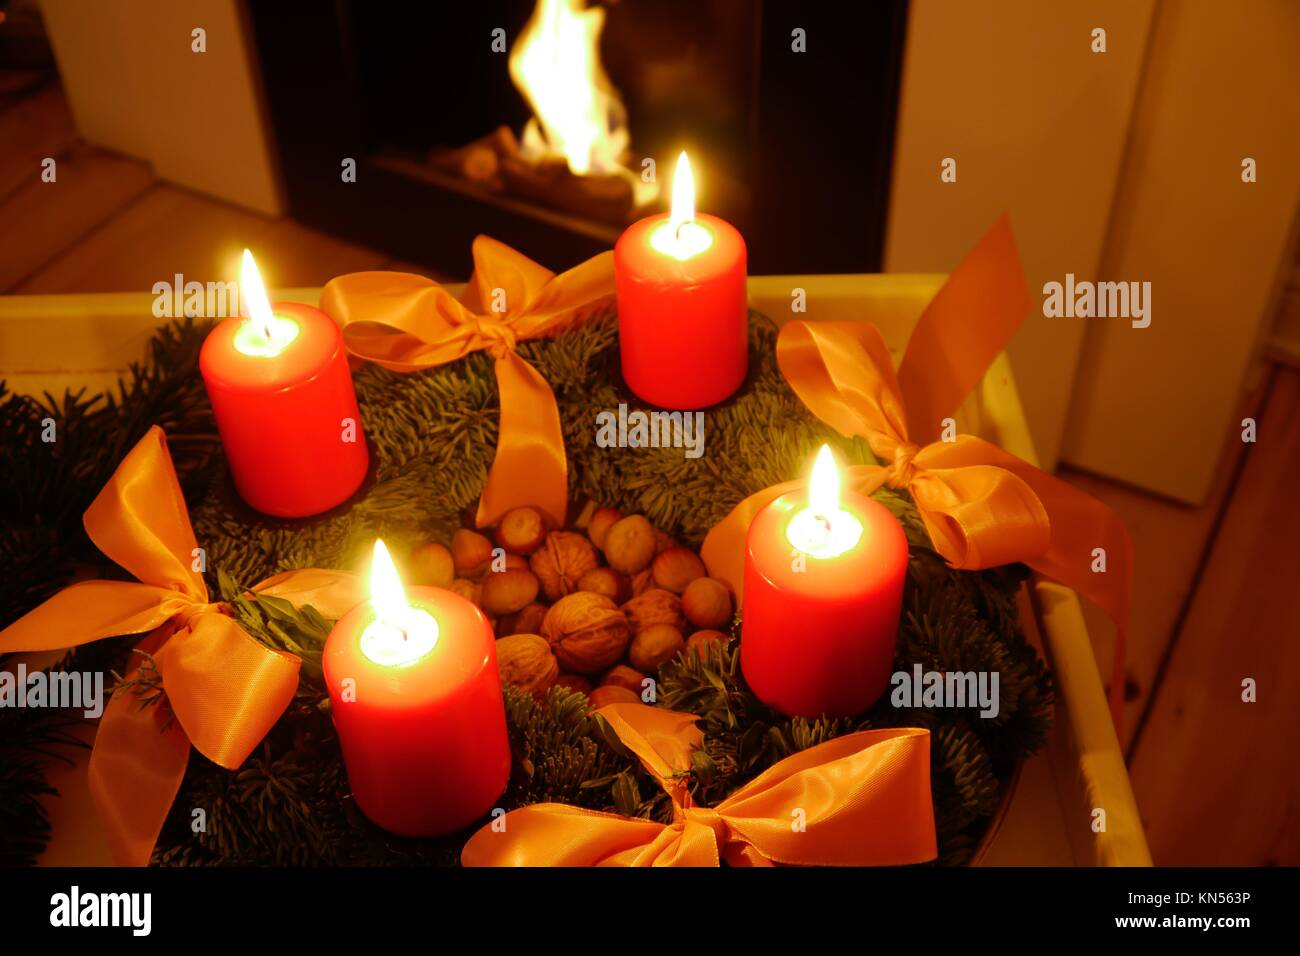 advent wreath with red candles and fireplace. - Stock Image